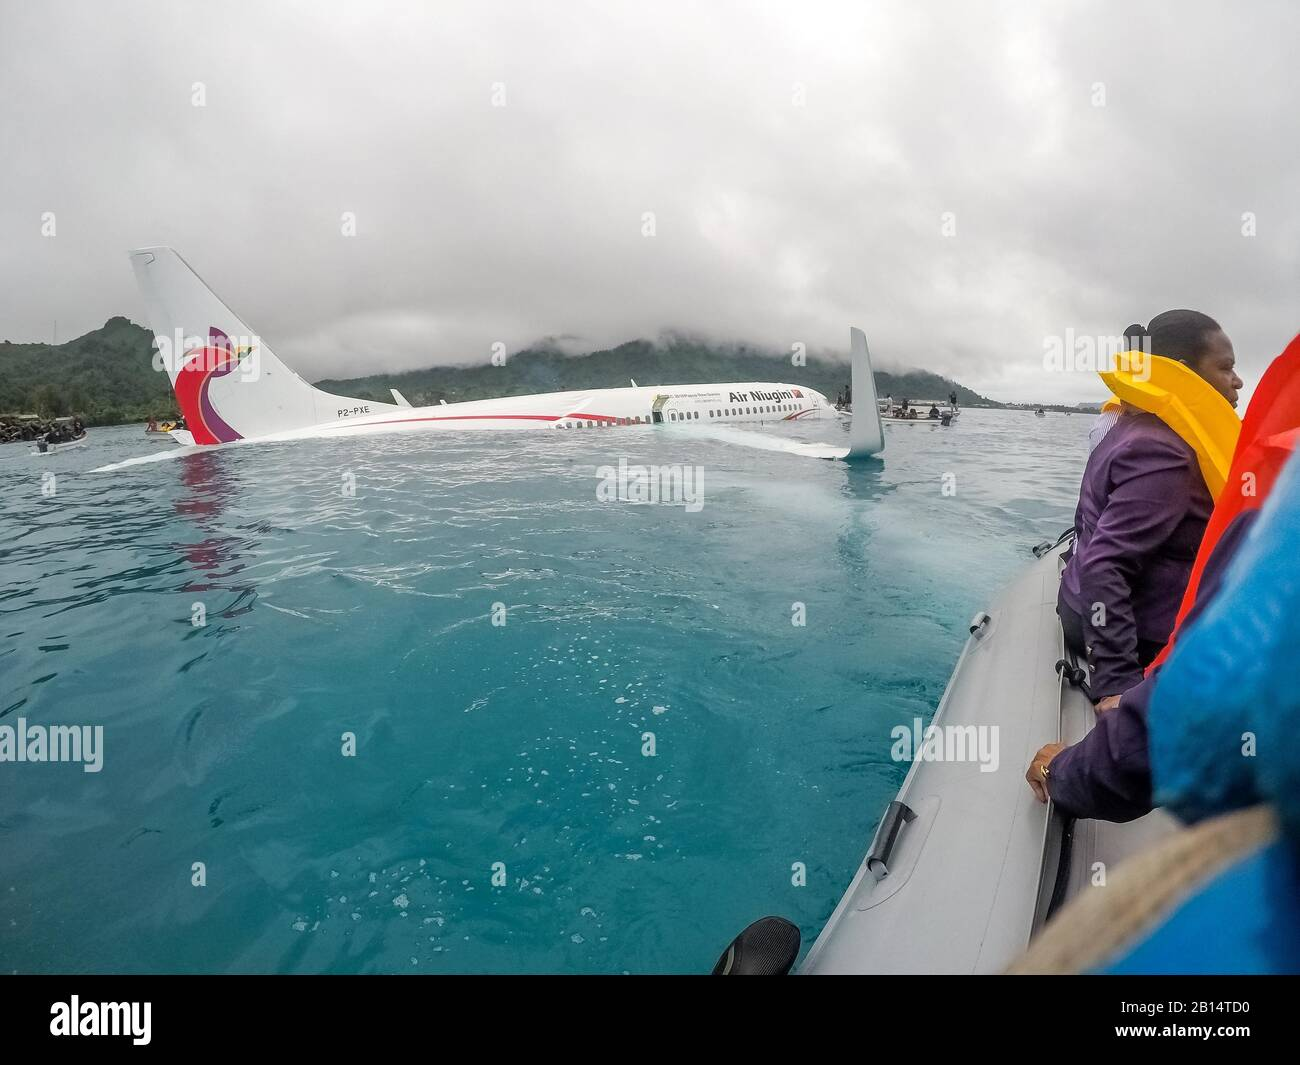 U.S. Sailors assigned to Underwater Construction Team (UCT) 2 assist local authorities in rescuing the passengers and crew of Air Niugini flight PX56 to shore following the plane ditching into the sea on its approach to Chuuk International Airport in the Federated States of Micronesia, Sept. 28, 2018.  (U.S. Navy photo by Lt. Zach Niezgodski) Stock Photo